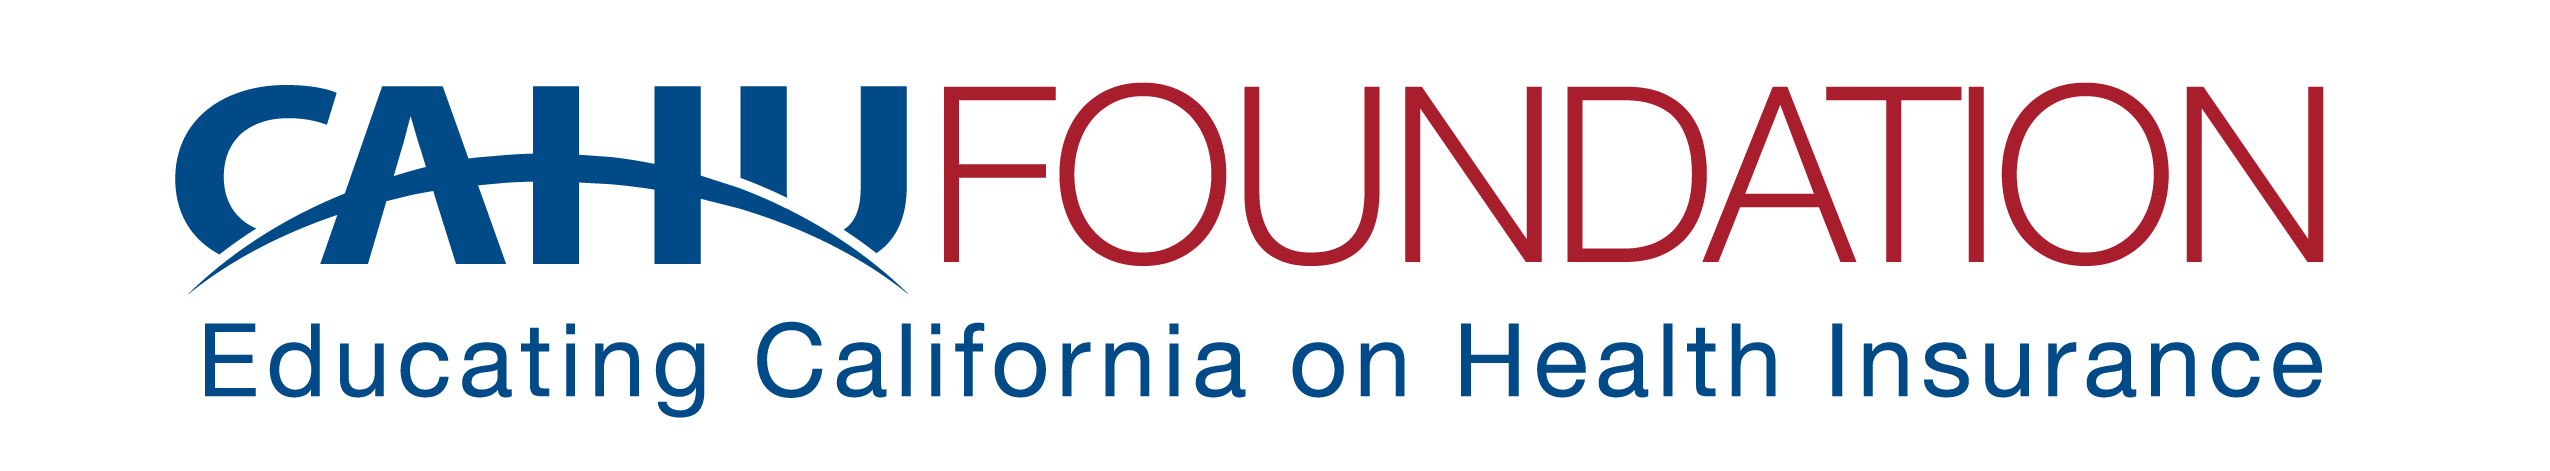 Foundation Logo-01